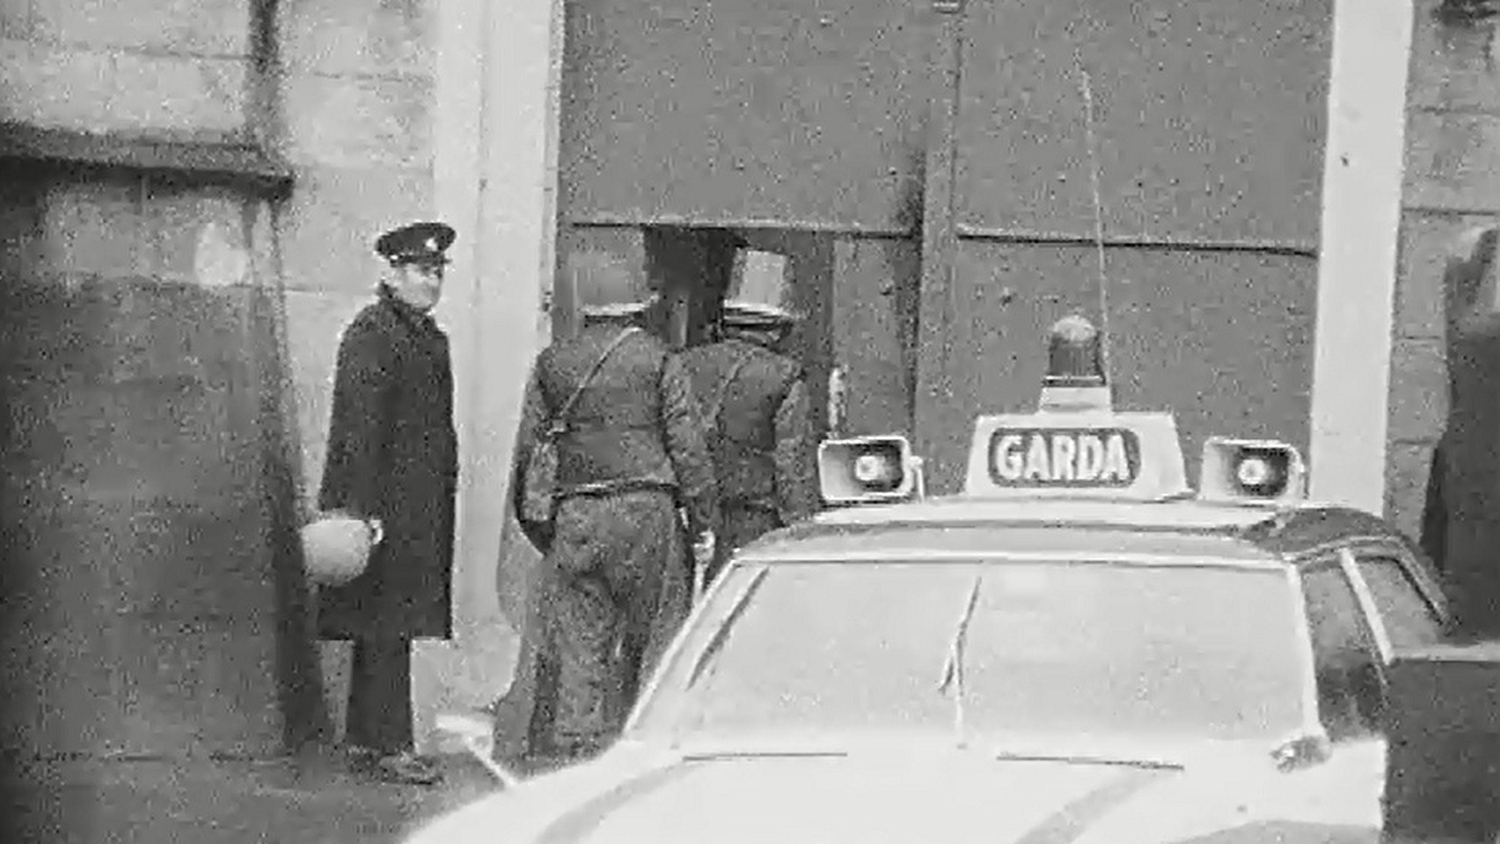 A prison officer accompanies soldiers into the infamous Port Laoise Prison, the 1970s